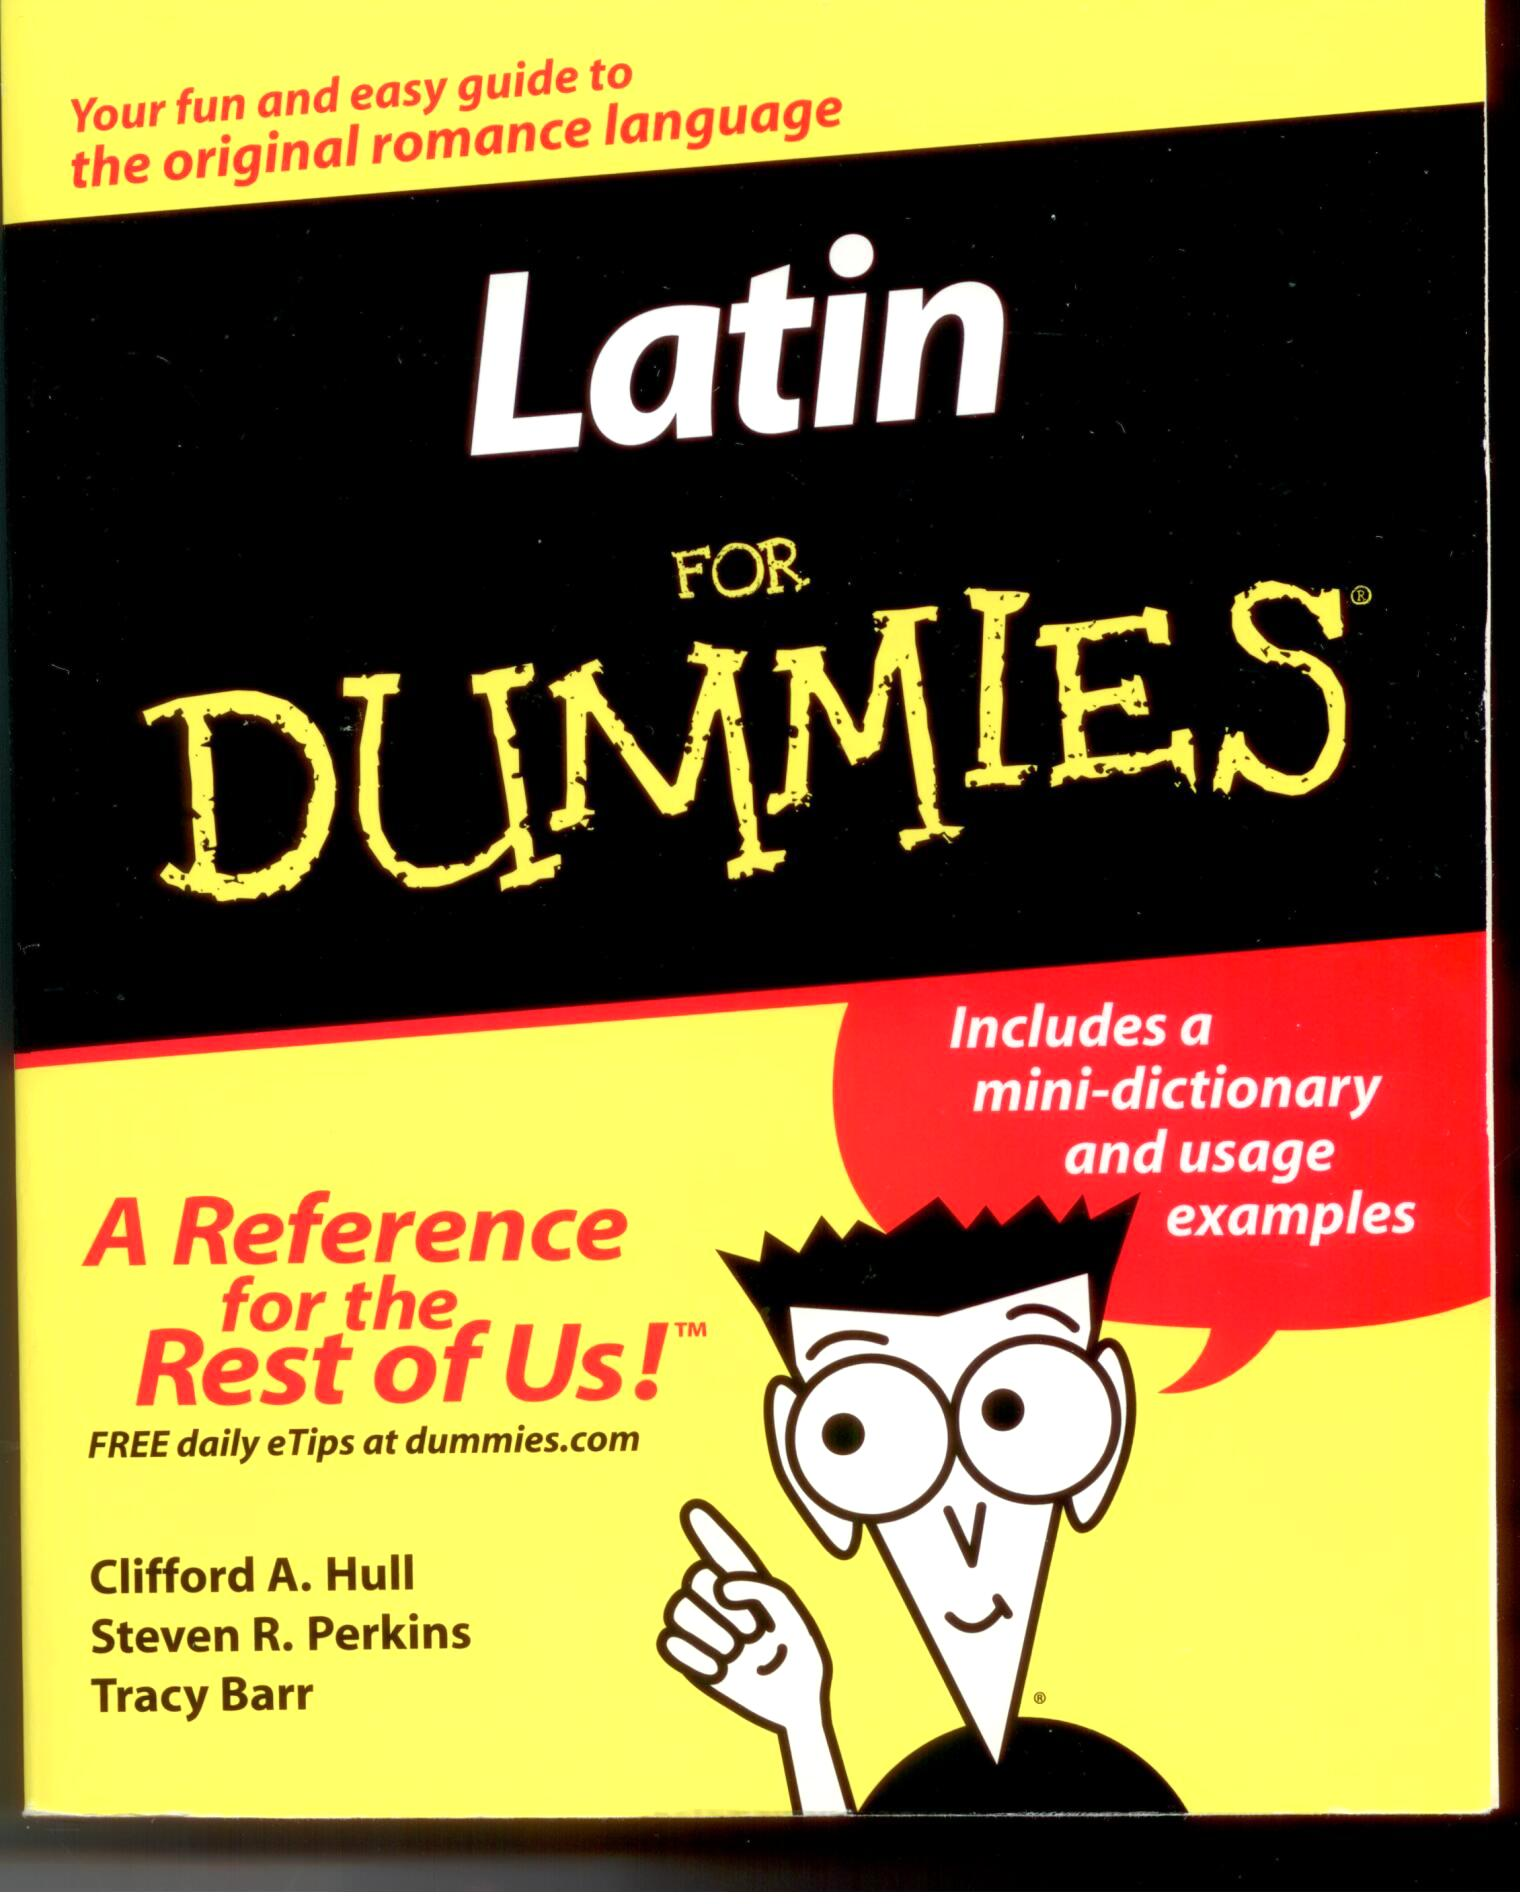 Latin For Dummies by Clifford A. Hull 108-9780764554315